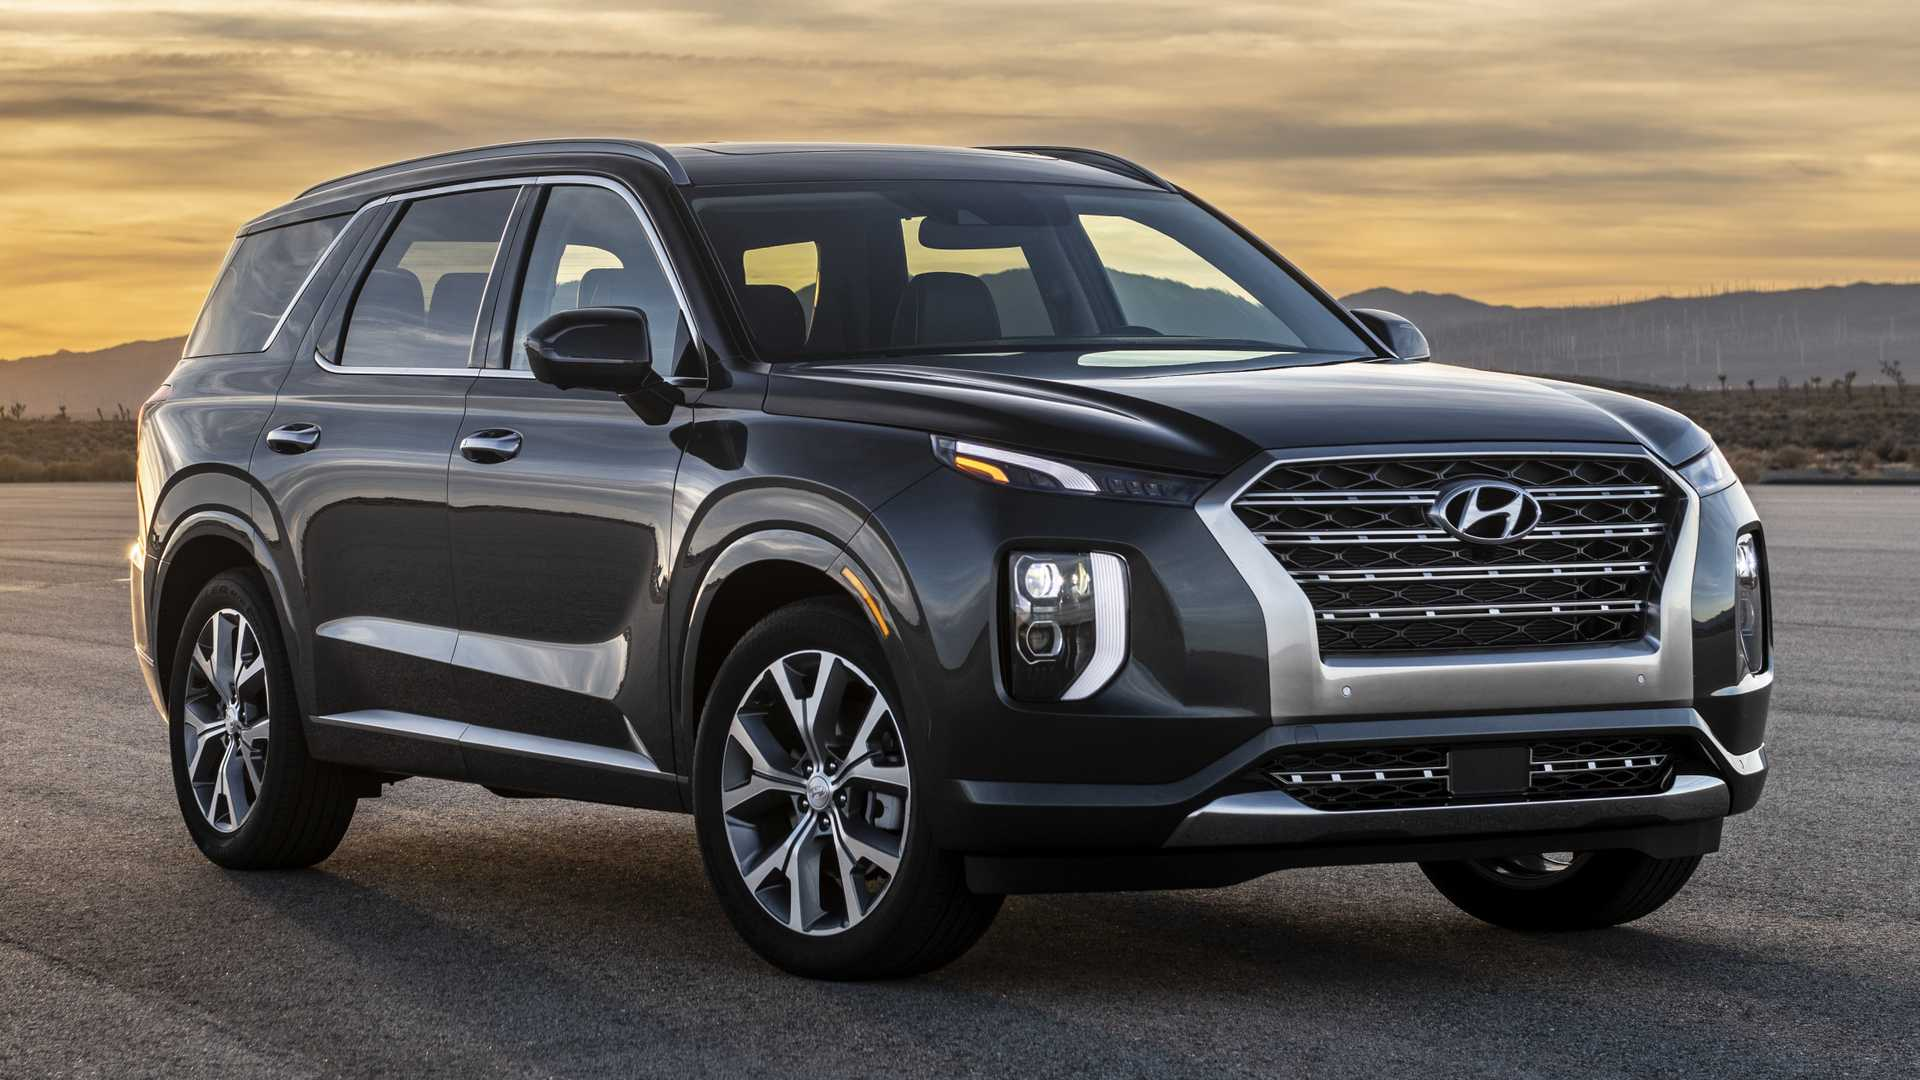 49 All New When Will The 2020 Hyundai Palisade Be Available Spy Shoot